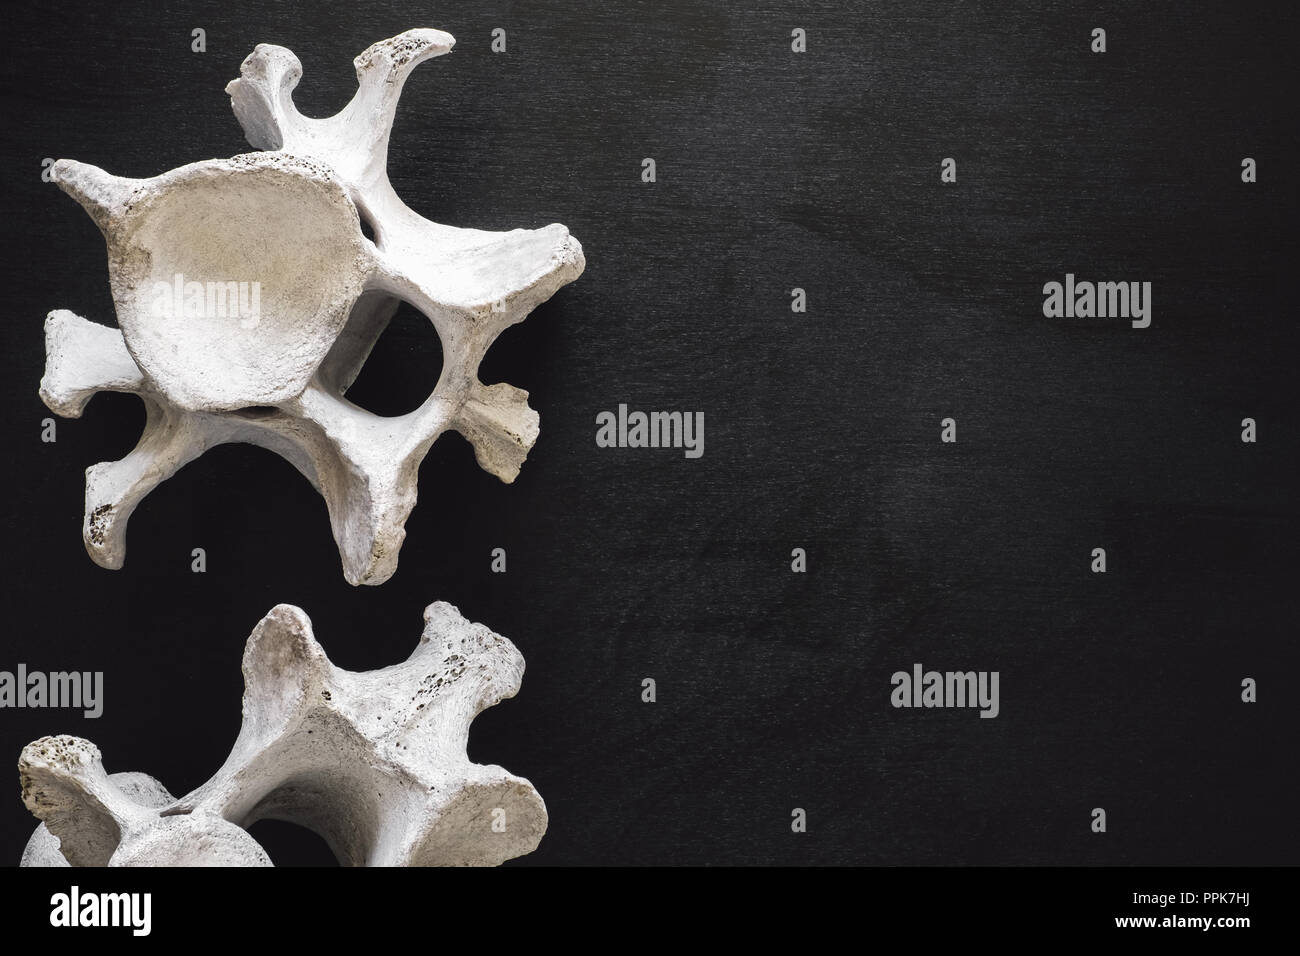 Animal Vertebrae on Black Table with Space for Copy - Stock Image